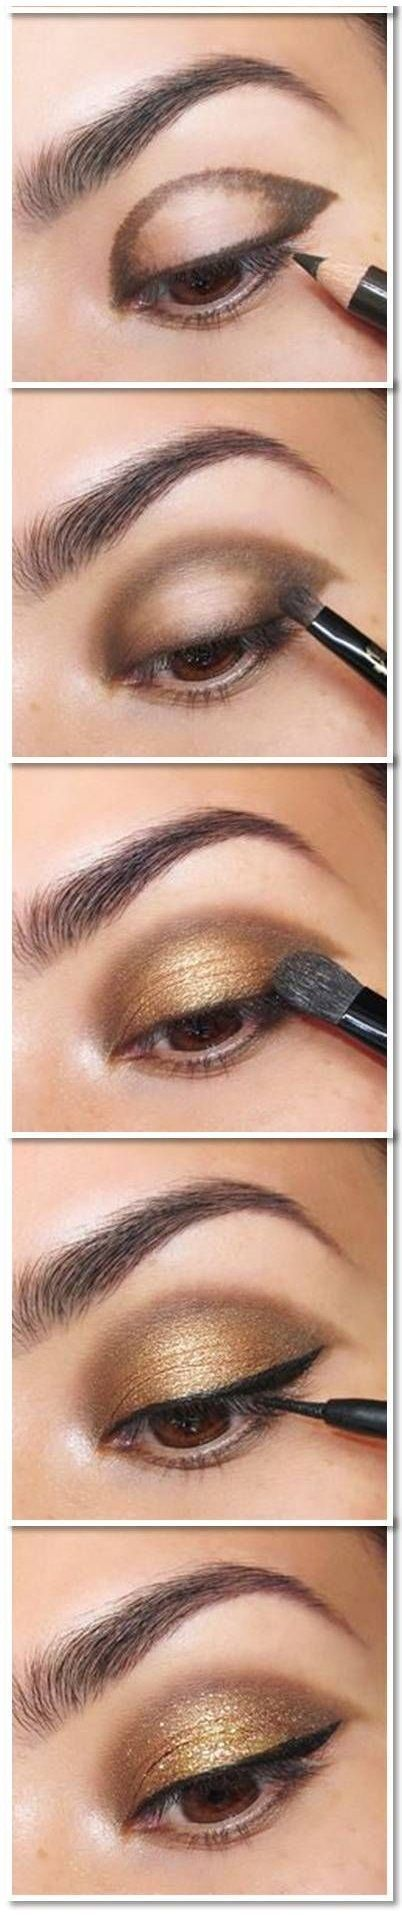 Simple Gold Eye Makeup Tutorial